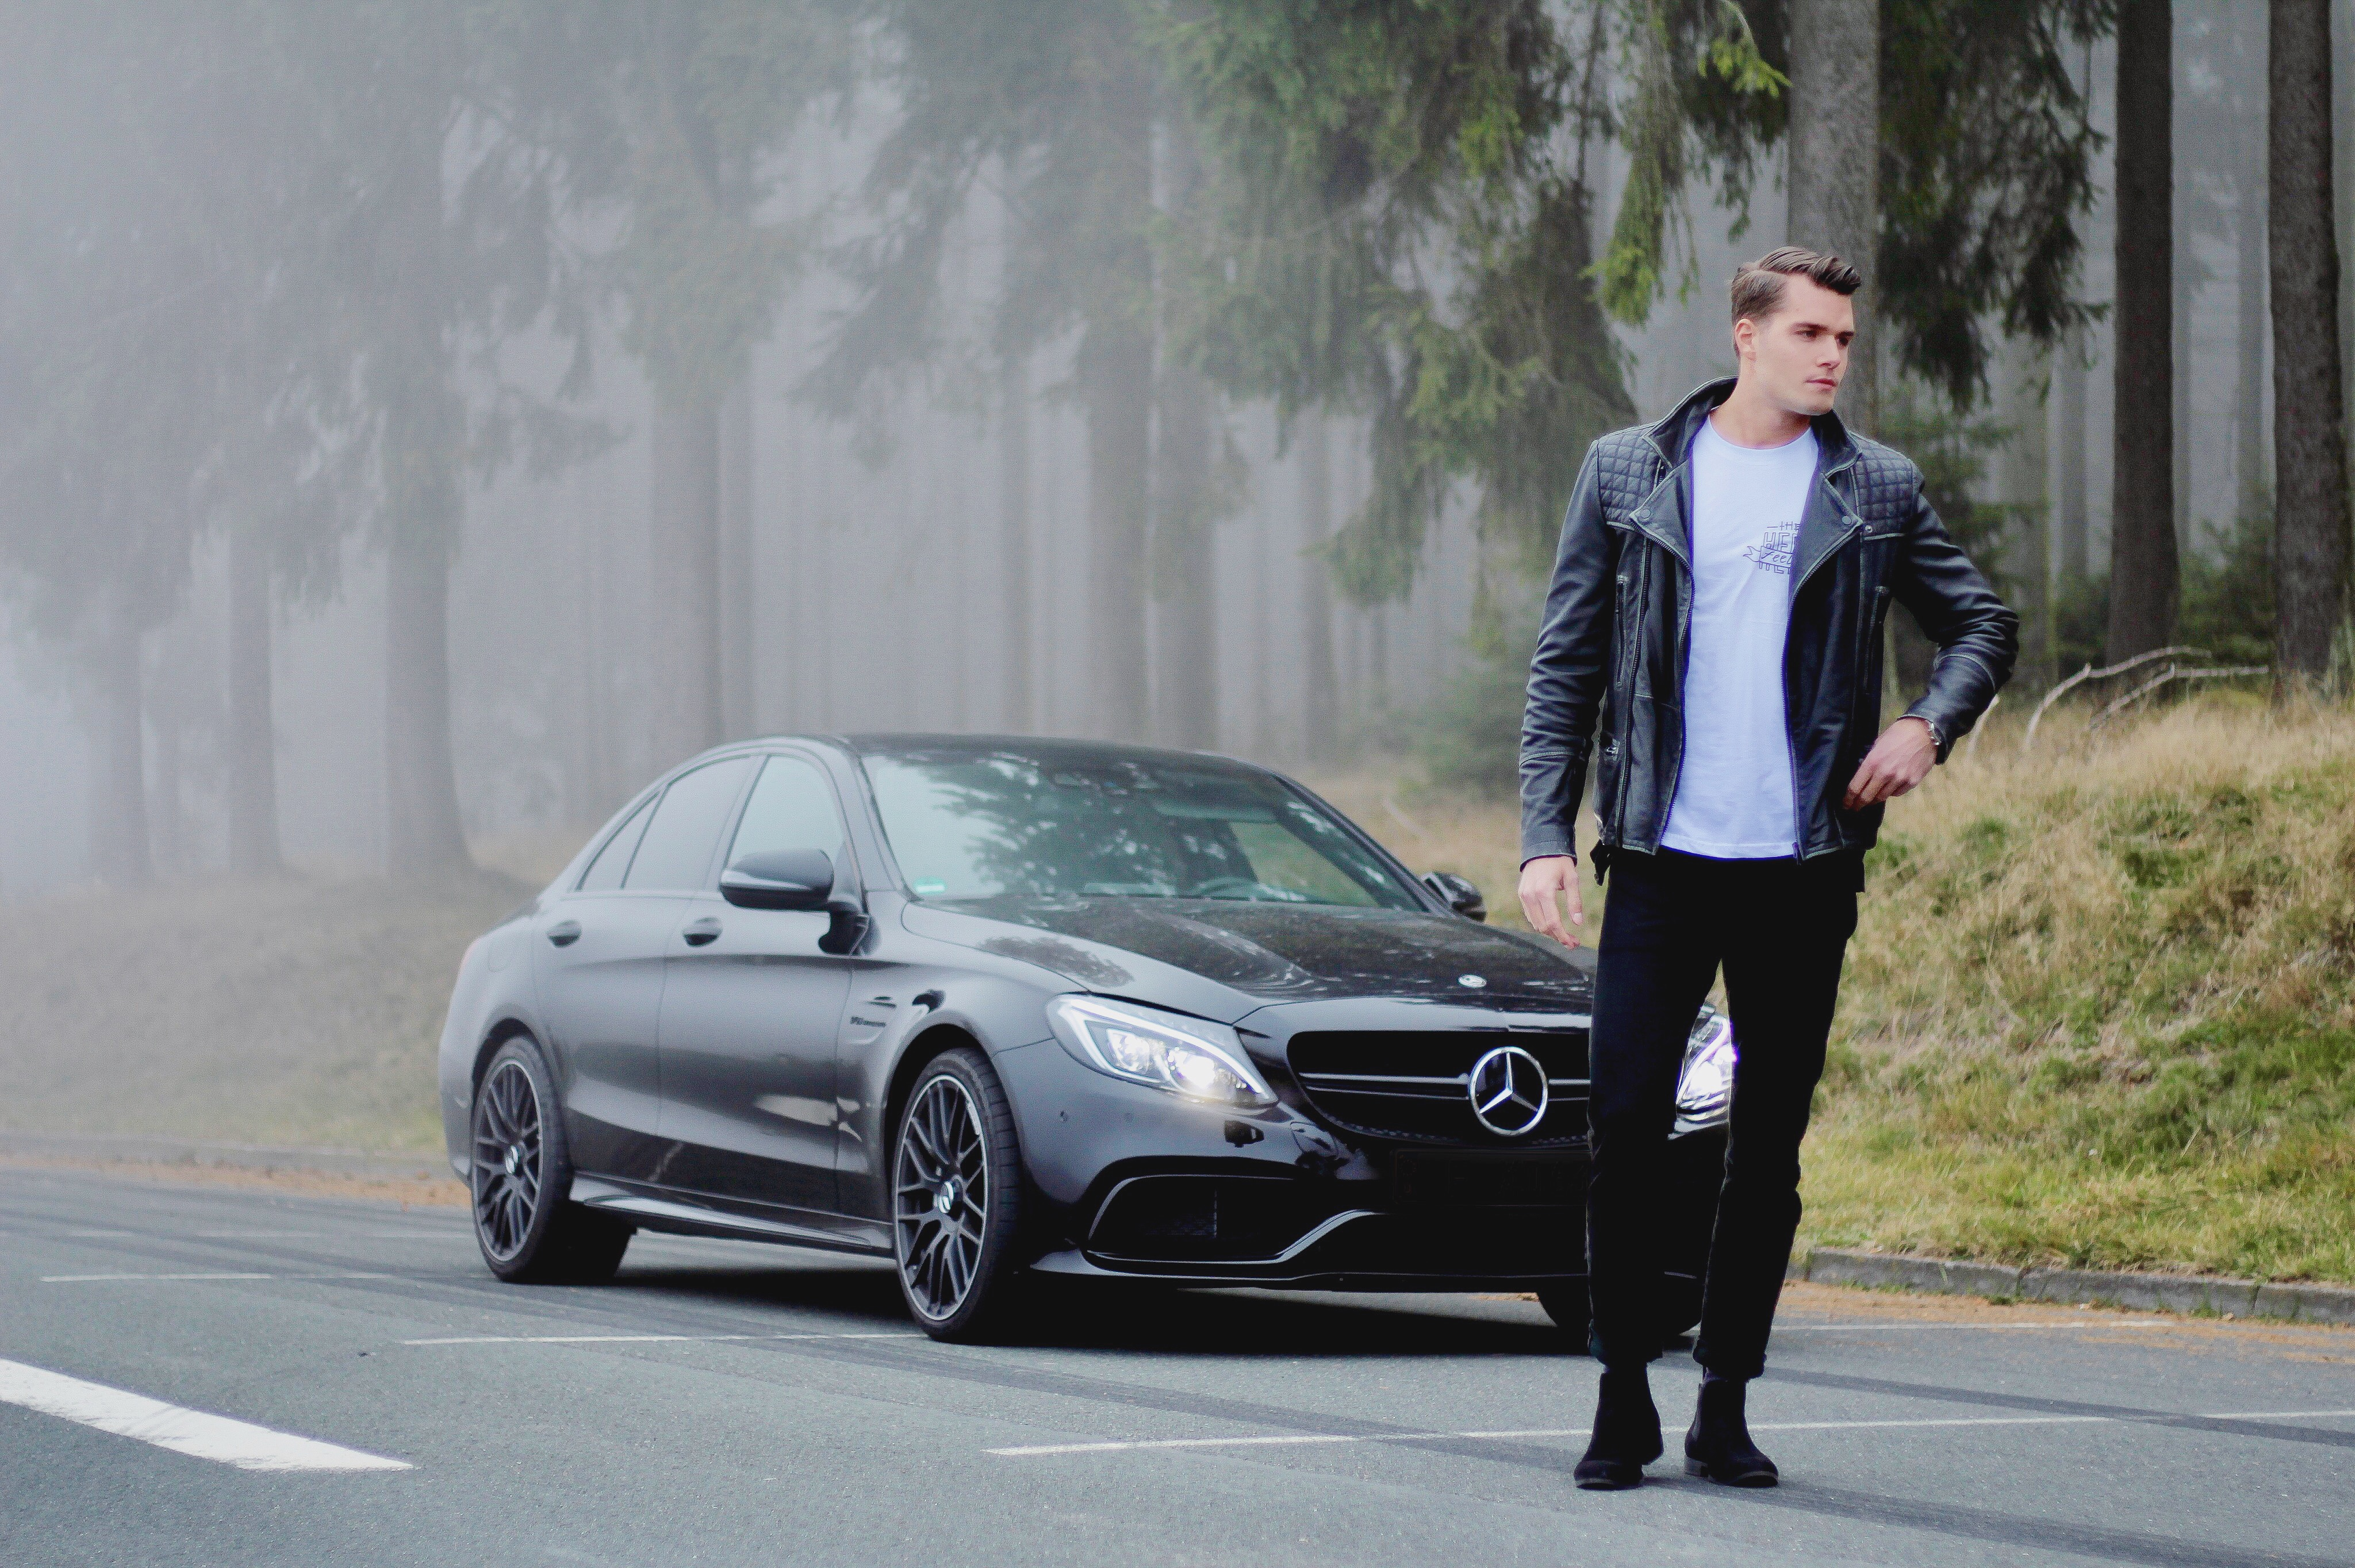 Mercedes C63 AMG, @dpersy wearing an Allsaints Leather Jacket, Levis Jeans Shot by @felixfr98